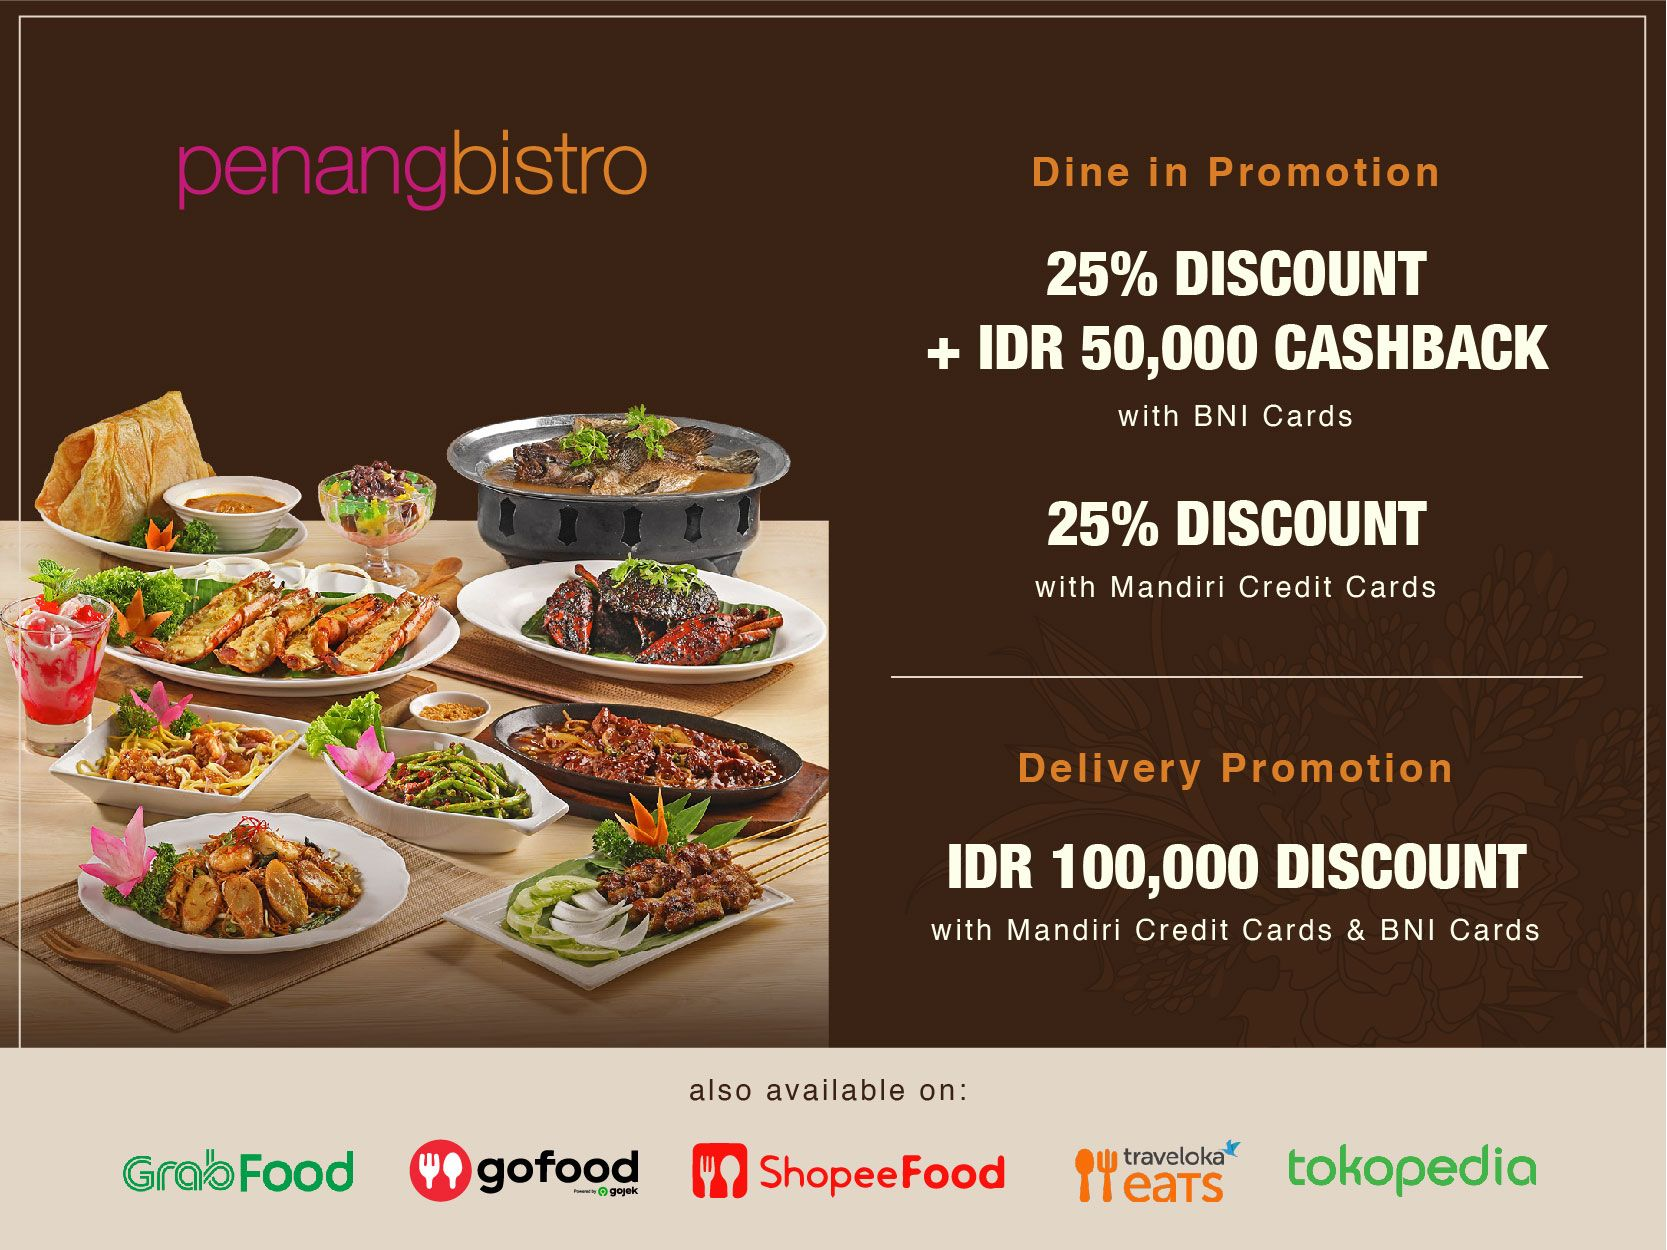 PENANG BISTRO DINE-IN & DELIVERY PROMOTION image